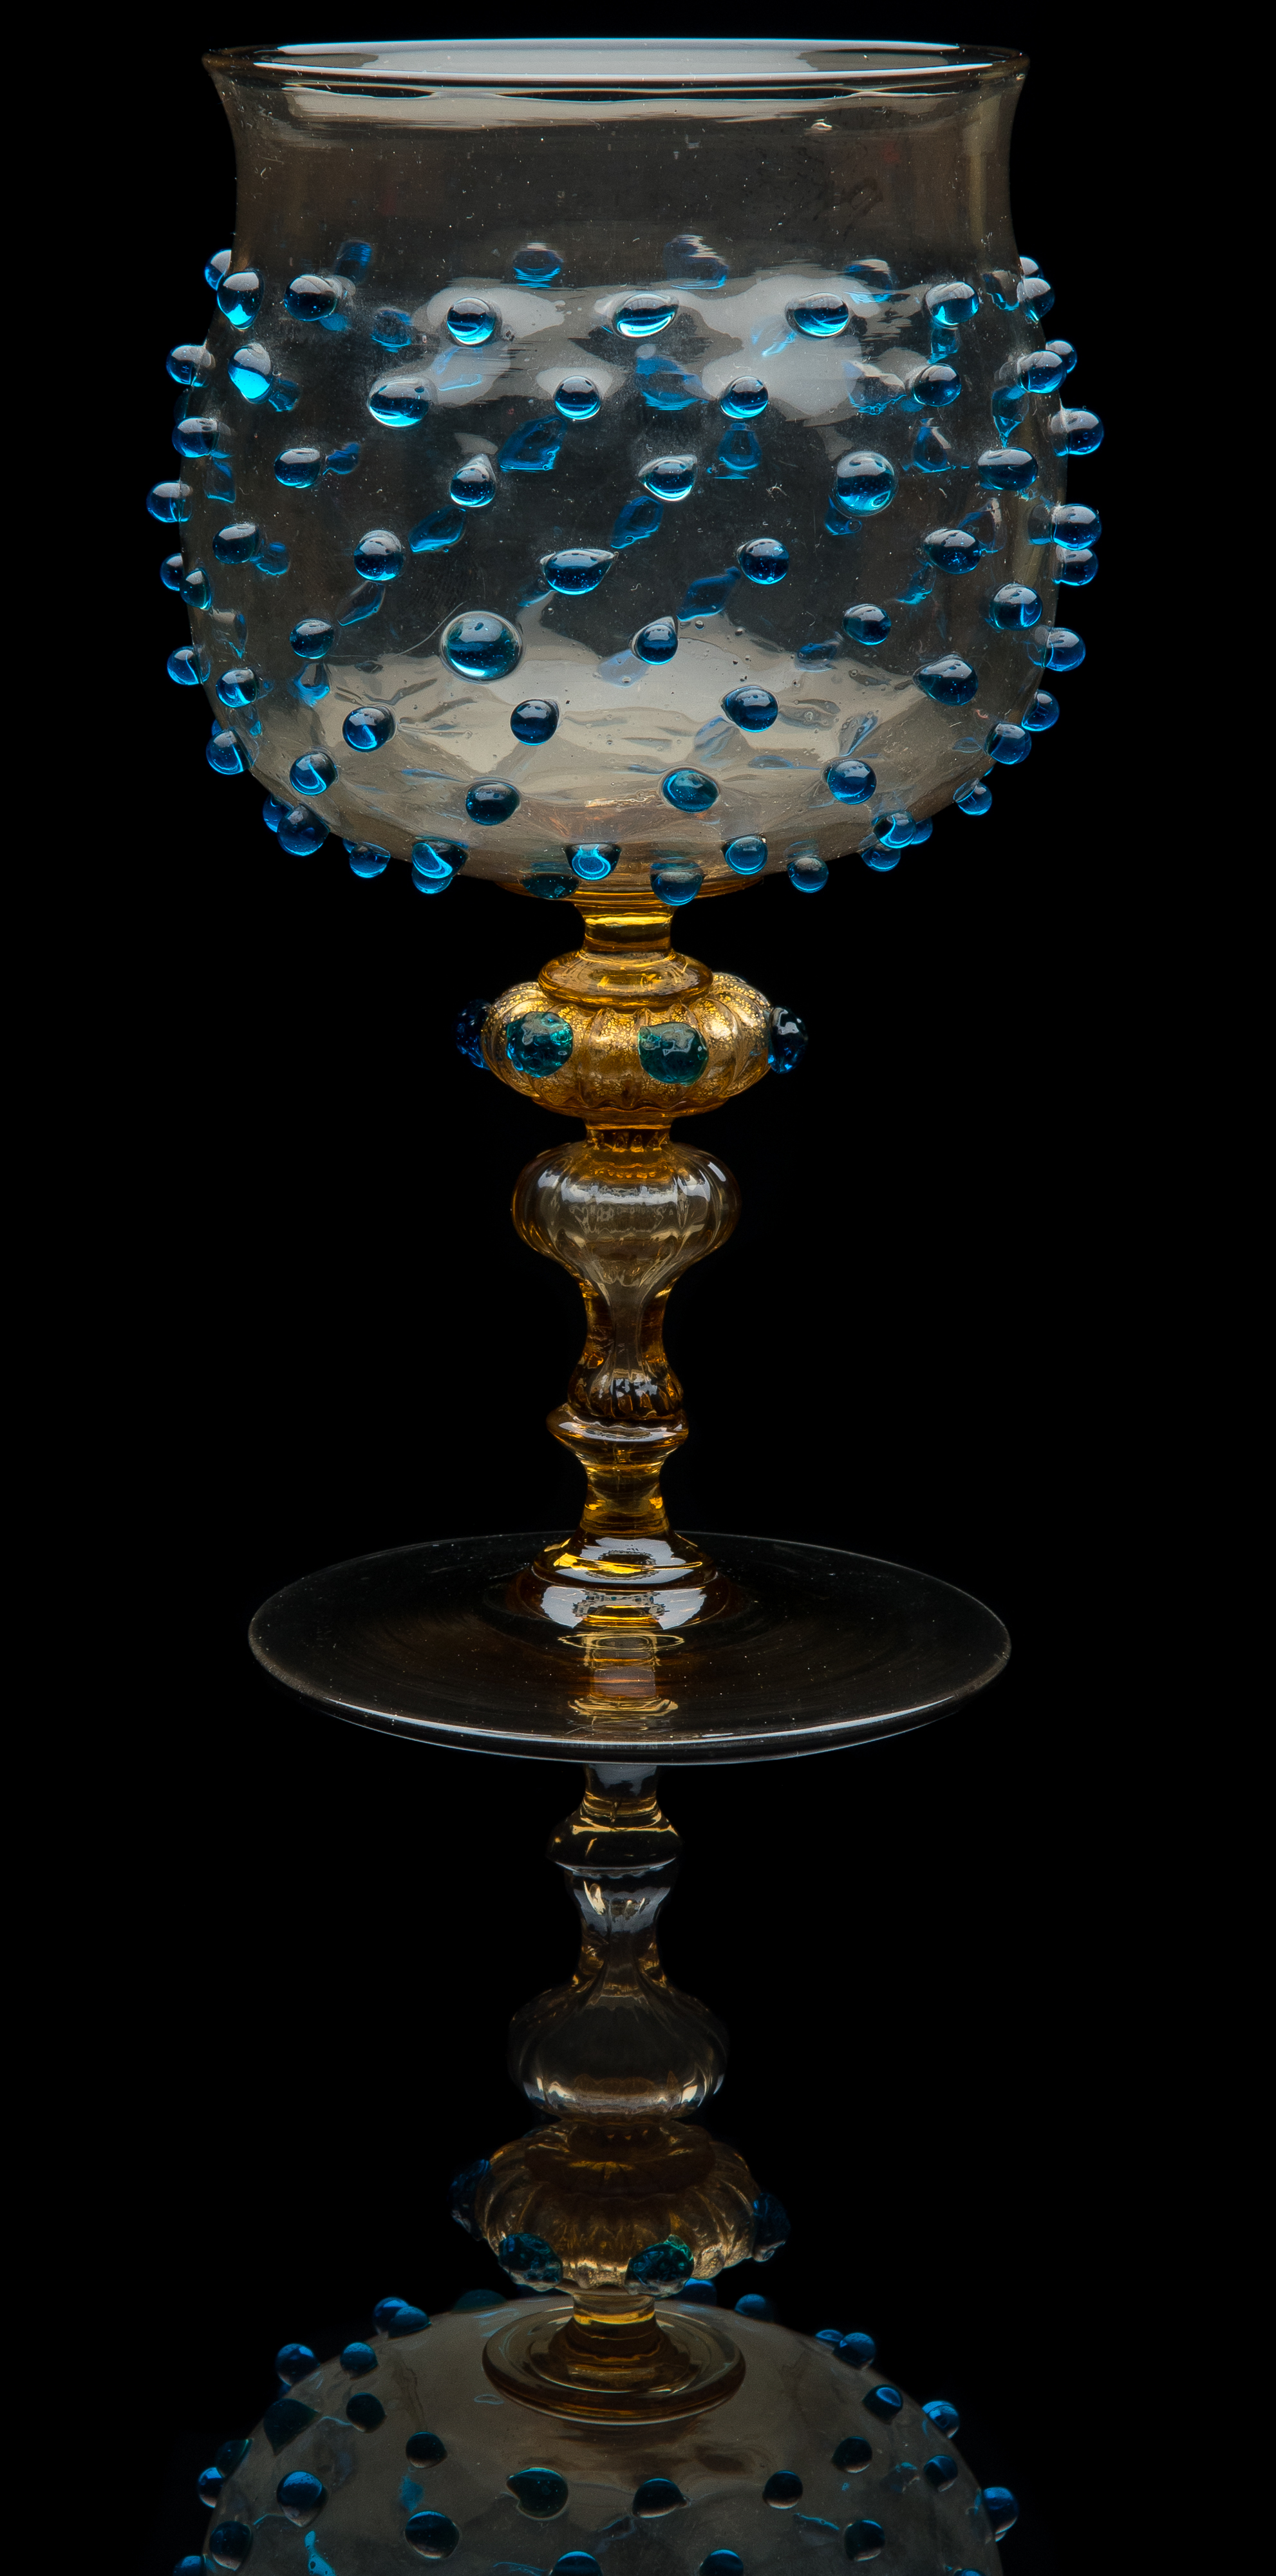 Salviati and Company,  Amber Goblet with Applied Blue Beads and Hollow Stem  (glass, 8 1/8 inches), VV.880